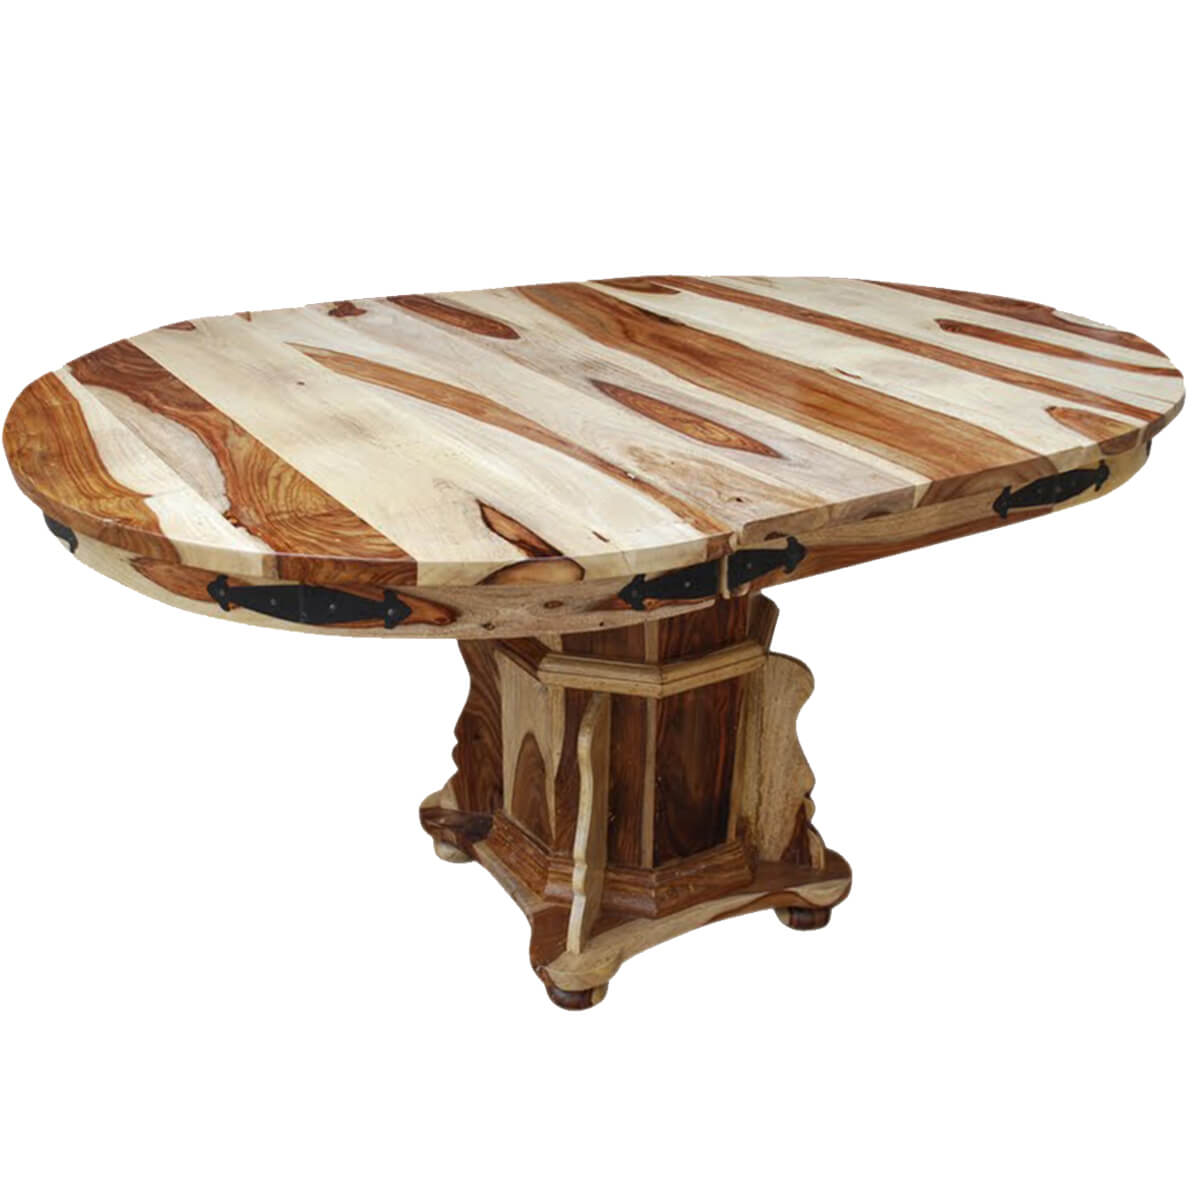 Dallas ranch solid wood pedestal round dining table w for Round extension dining table